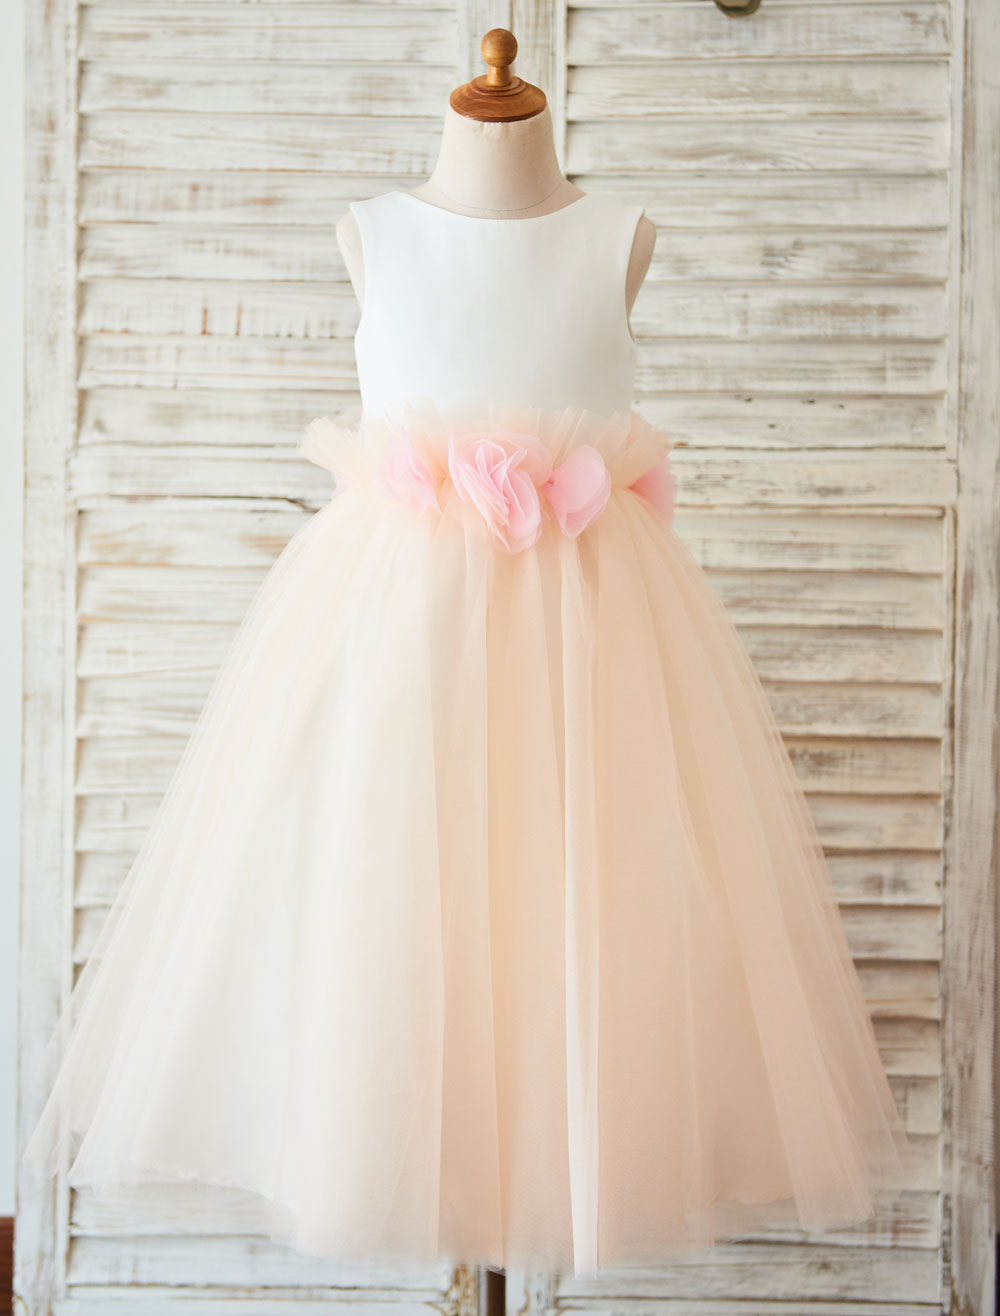 Buy Flower Girl Dress V Back Tulle A Line Toddles Pageant Dress Ribbon Bow Ankle Length Tutu Kids Party Dress for $72.89 in Milanoo store